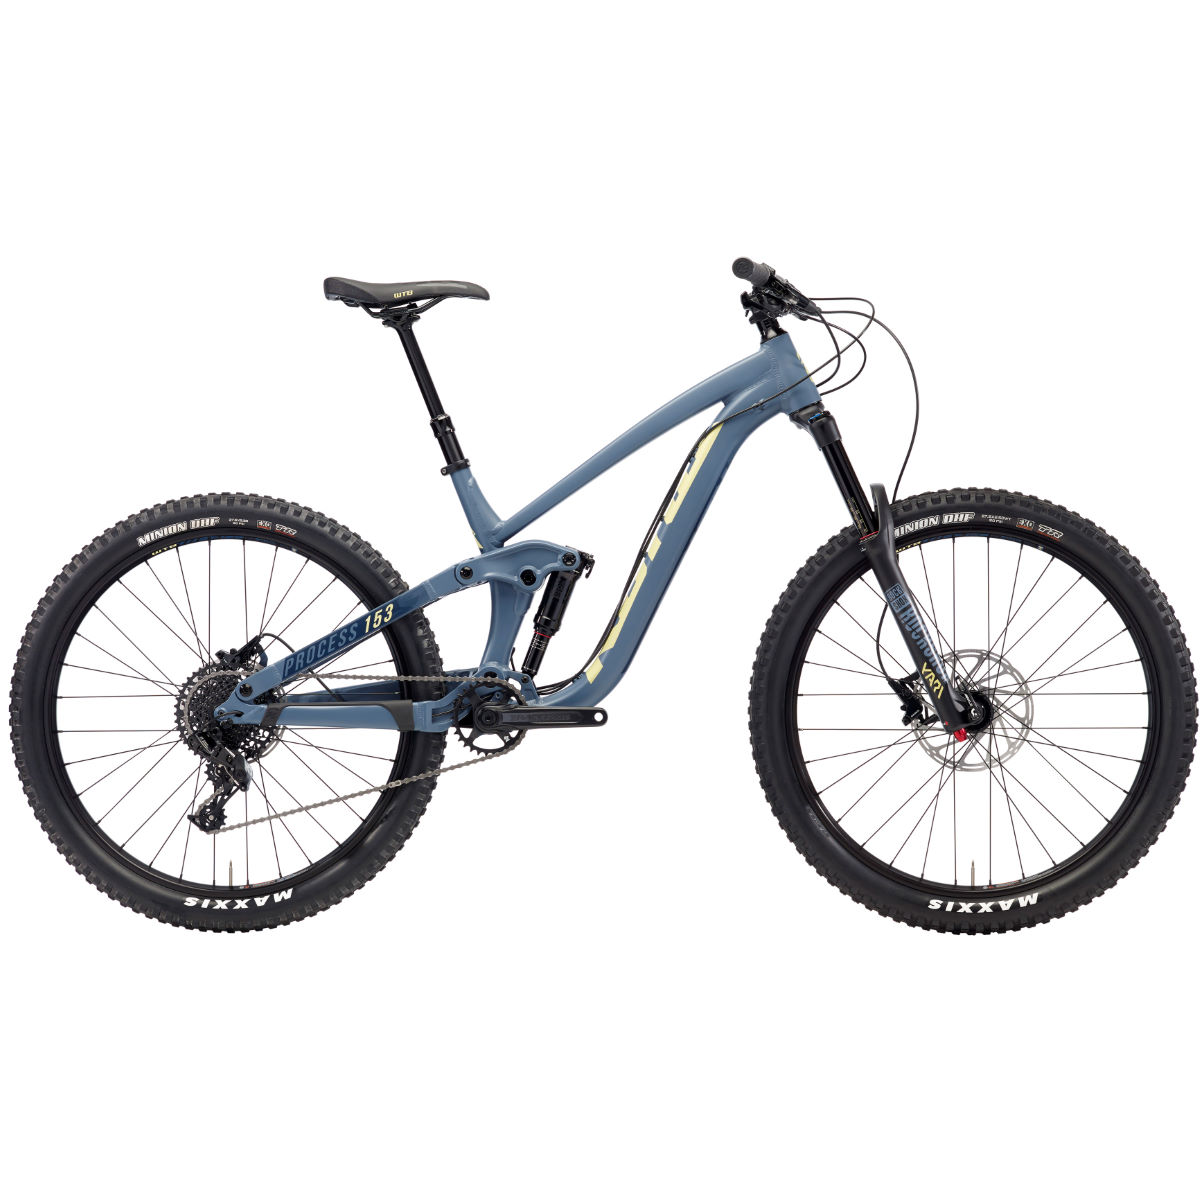 VTT Kona Process 153 AL 27,5 pouces (2018) - Medium Stock Bike Bleu